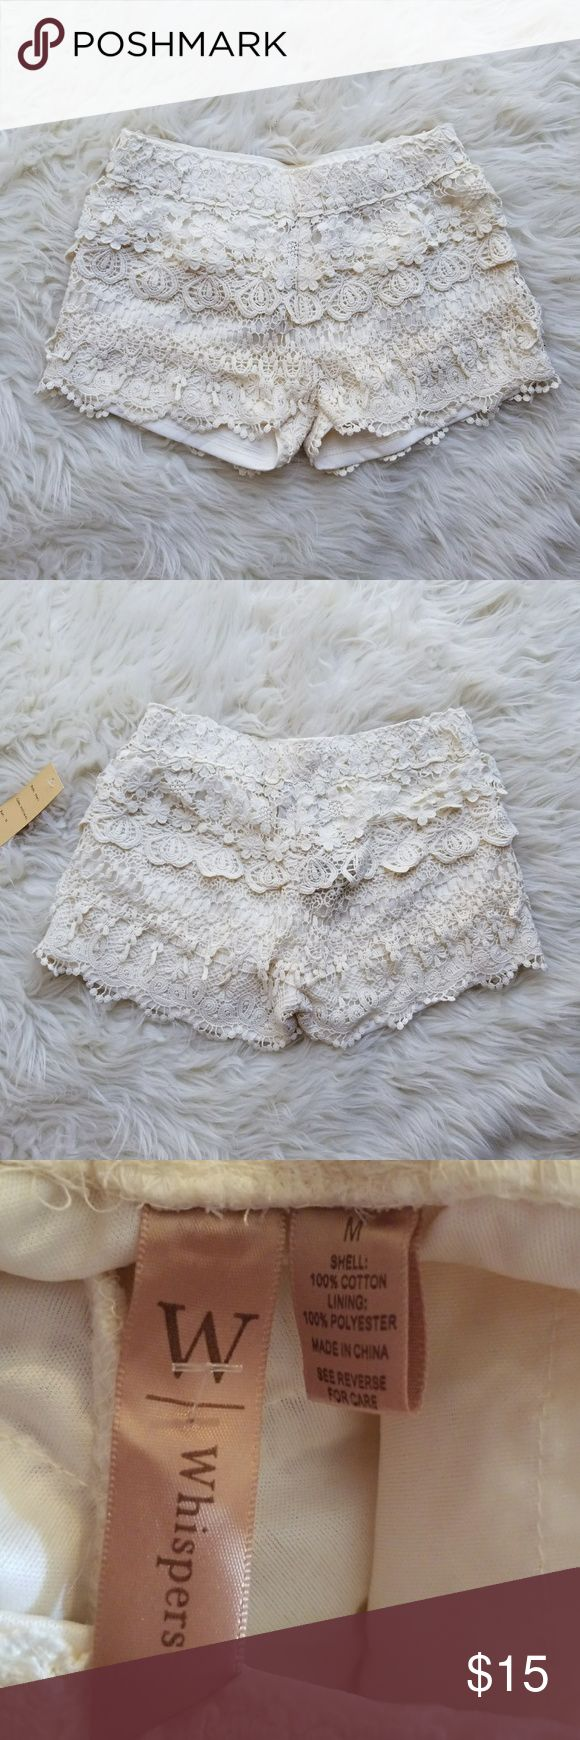 Nwt Cream Lace Shorts Cream colored lace shorts, perfect for summer!  Brand: Whispers Size: Medium Condition: nwt, no flaws at all. Perfect condition.   #lace #laceshorts #softshorts #flowyshorts #fesivalwear #fesitvalshorts #nwt #summer #summerfashion #summerstyle #fashion #style #cheap #styleforcheap #xoxopf #bundleandsave Shorts